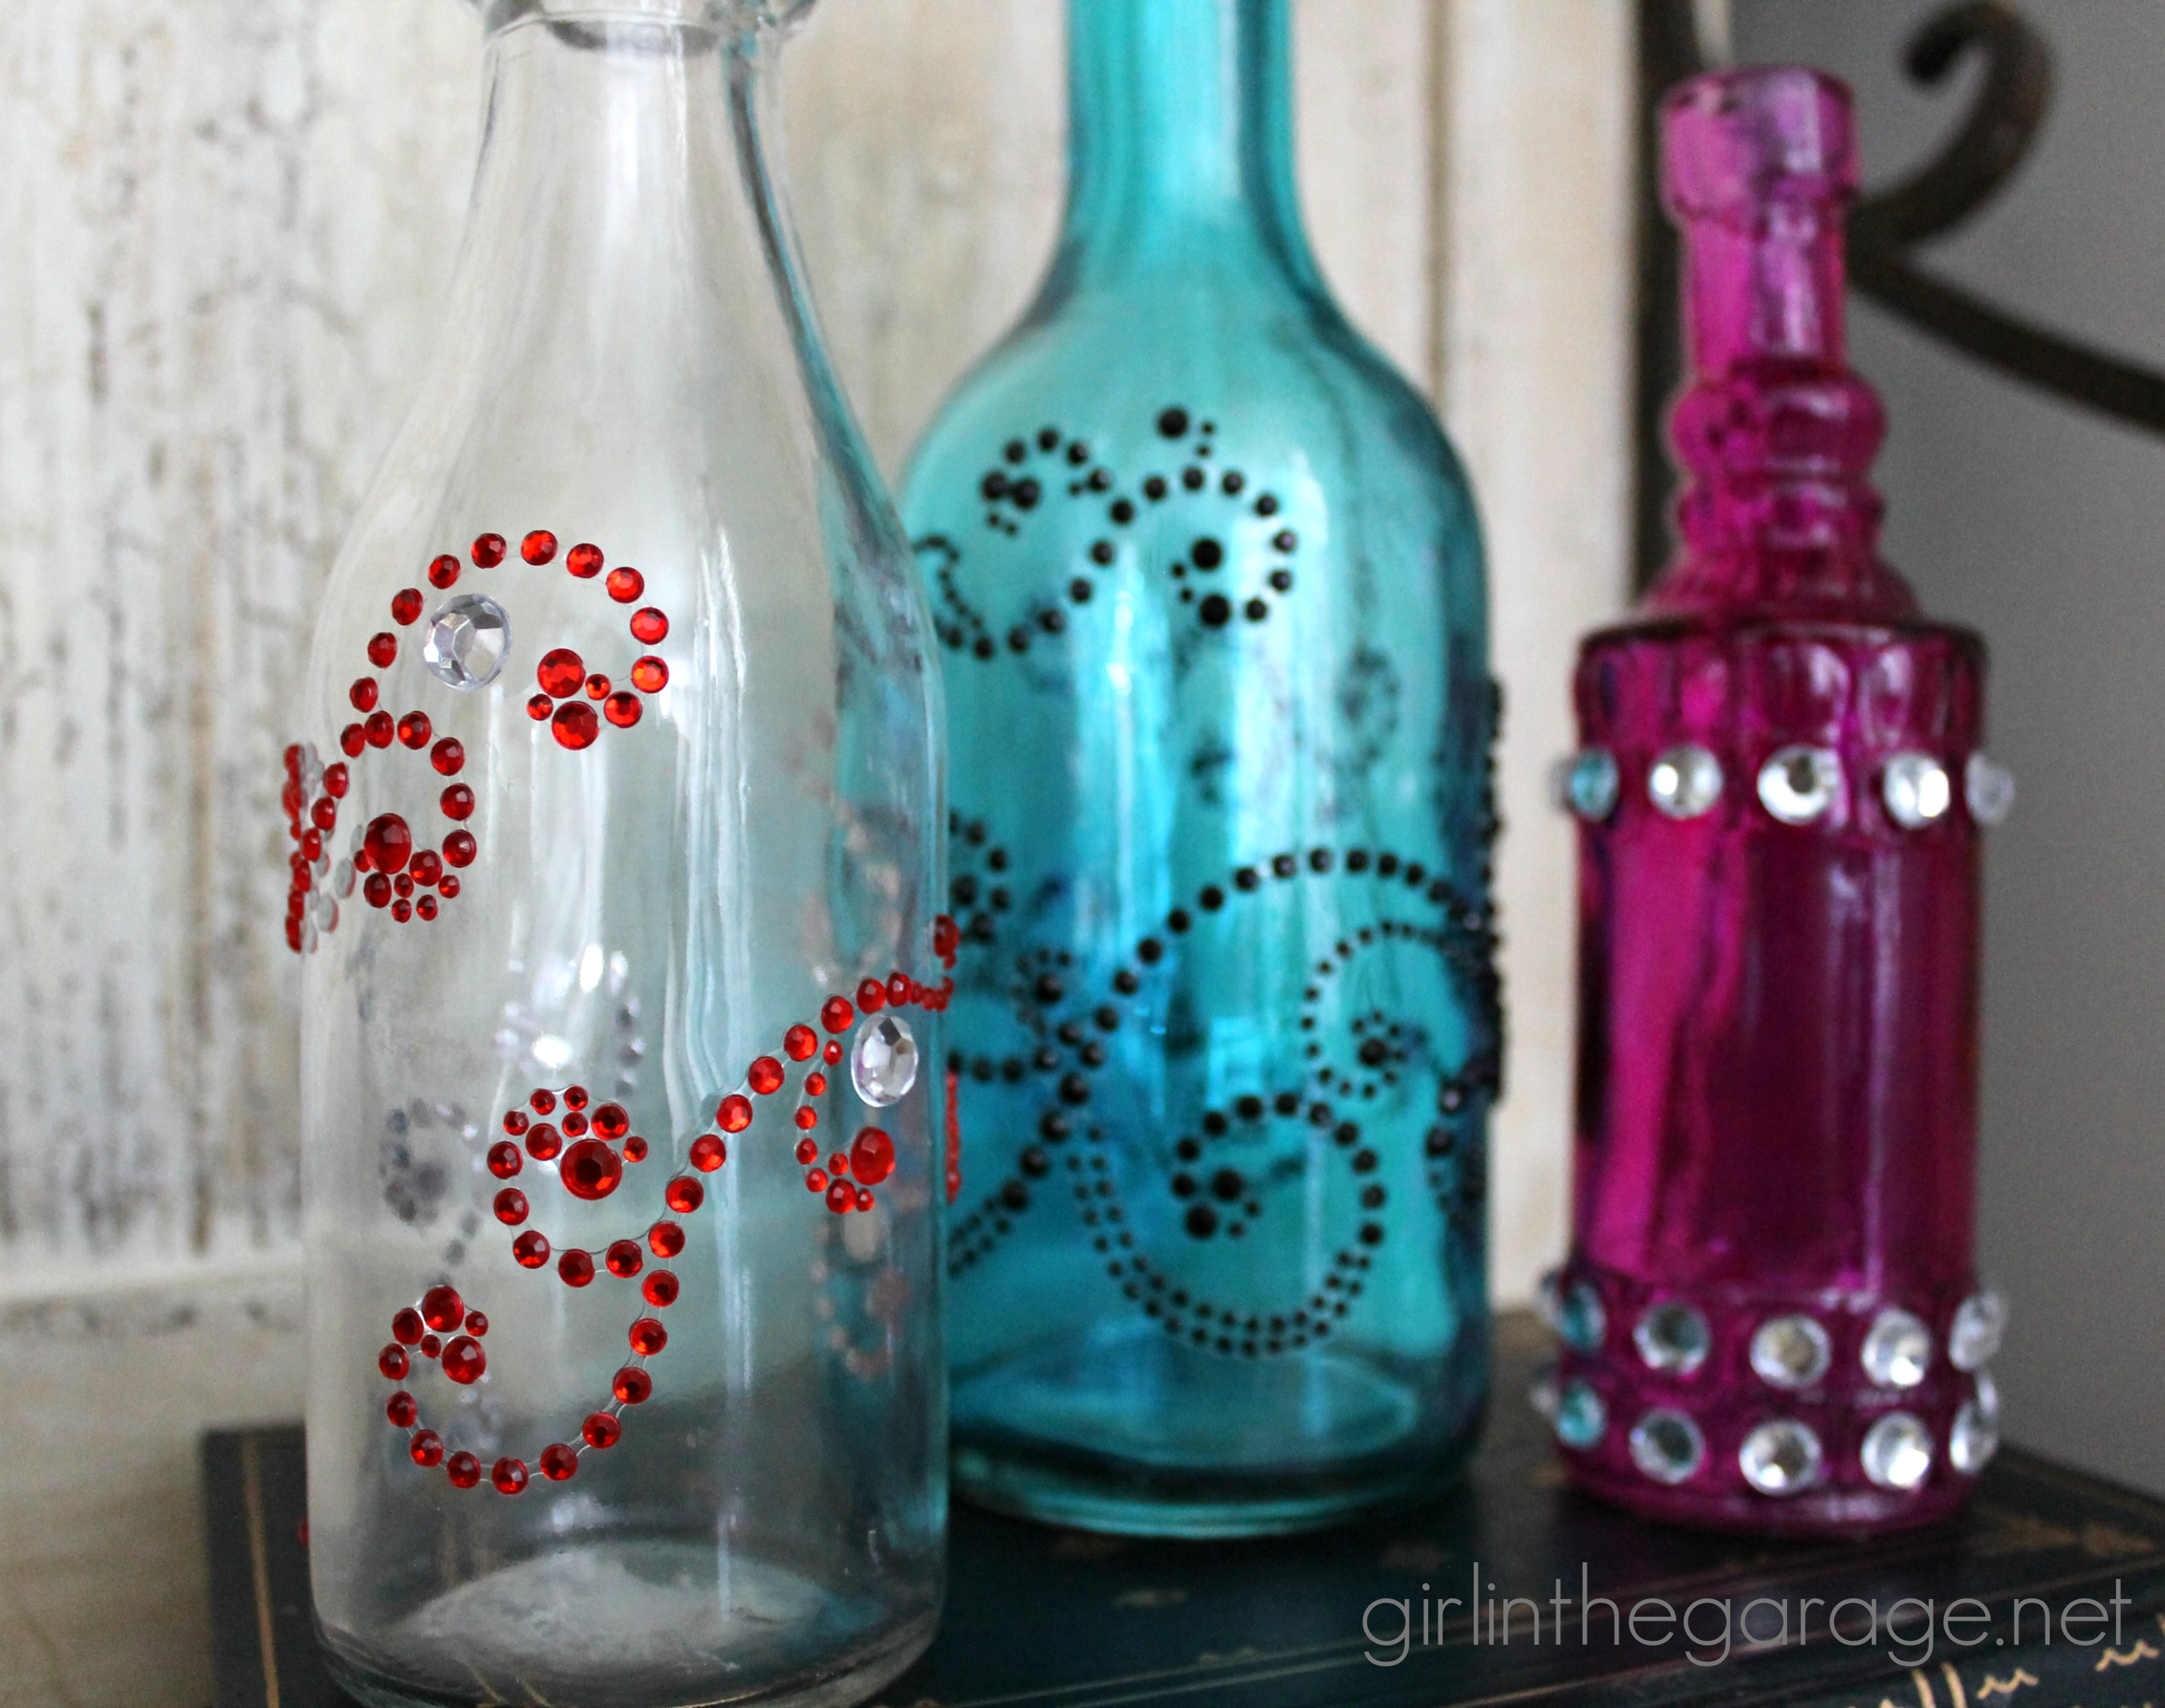 Bejeweled Bottles Michaels And Hometalk Pinterest Party